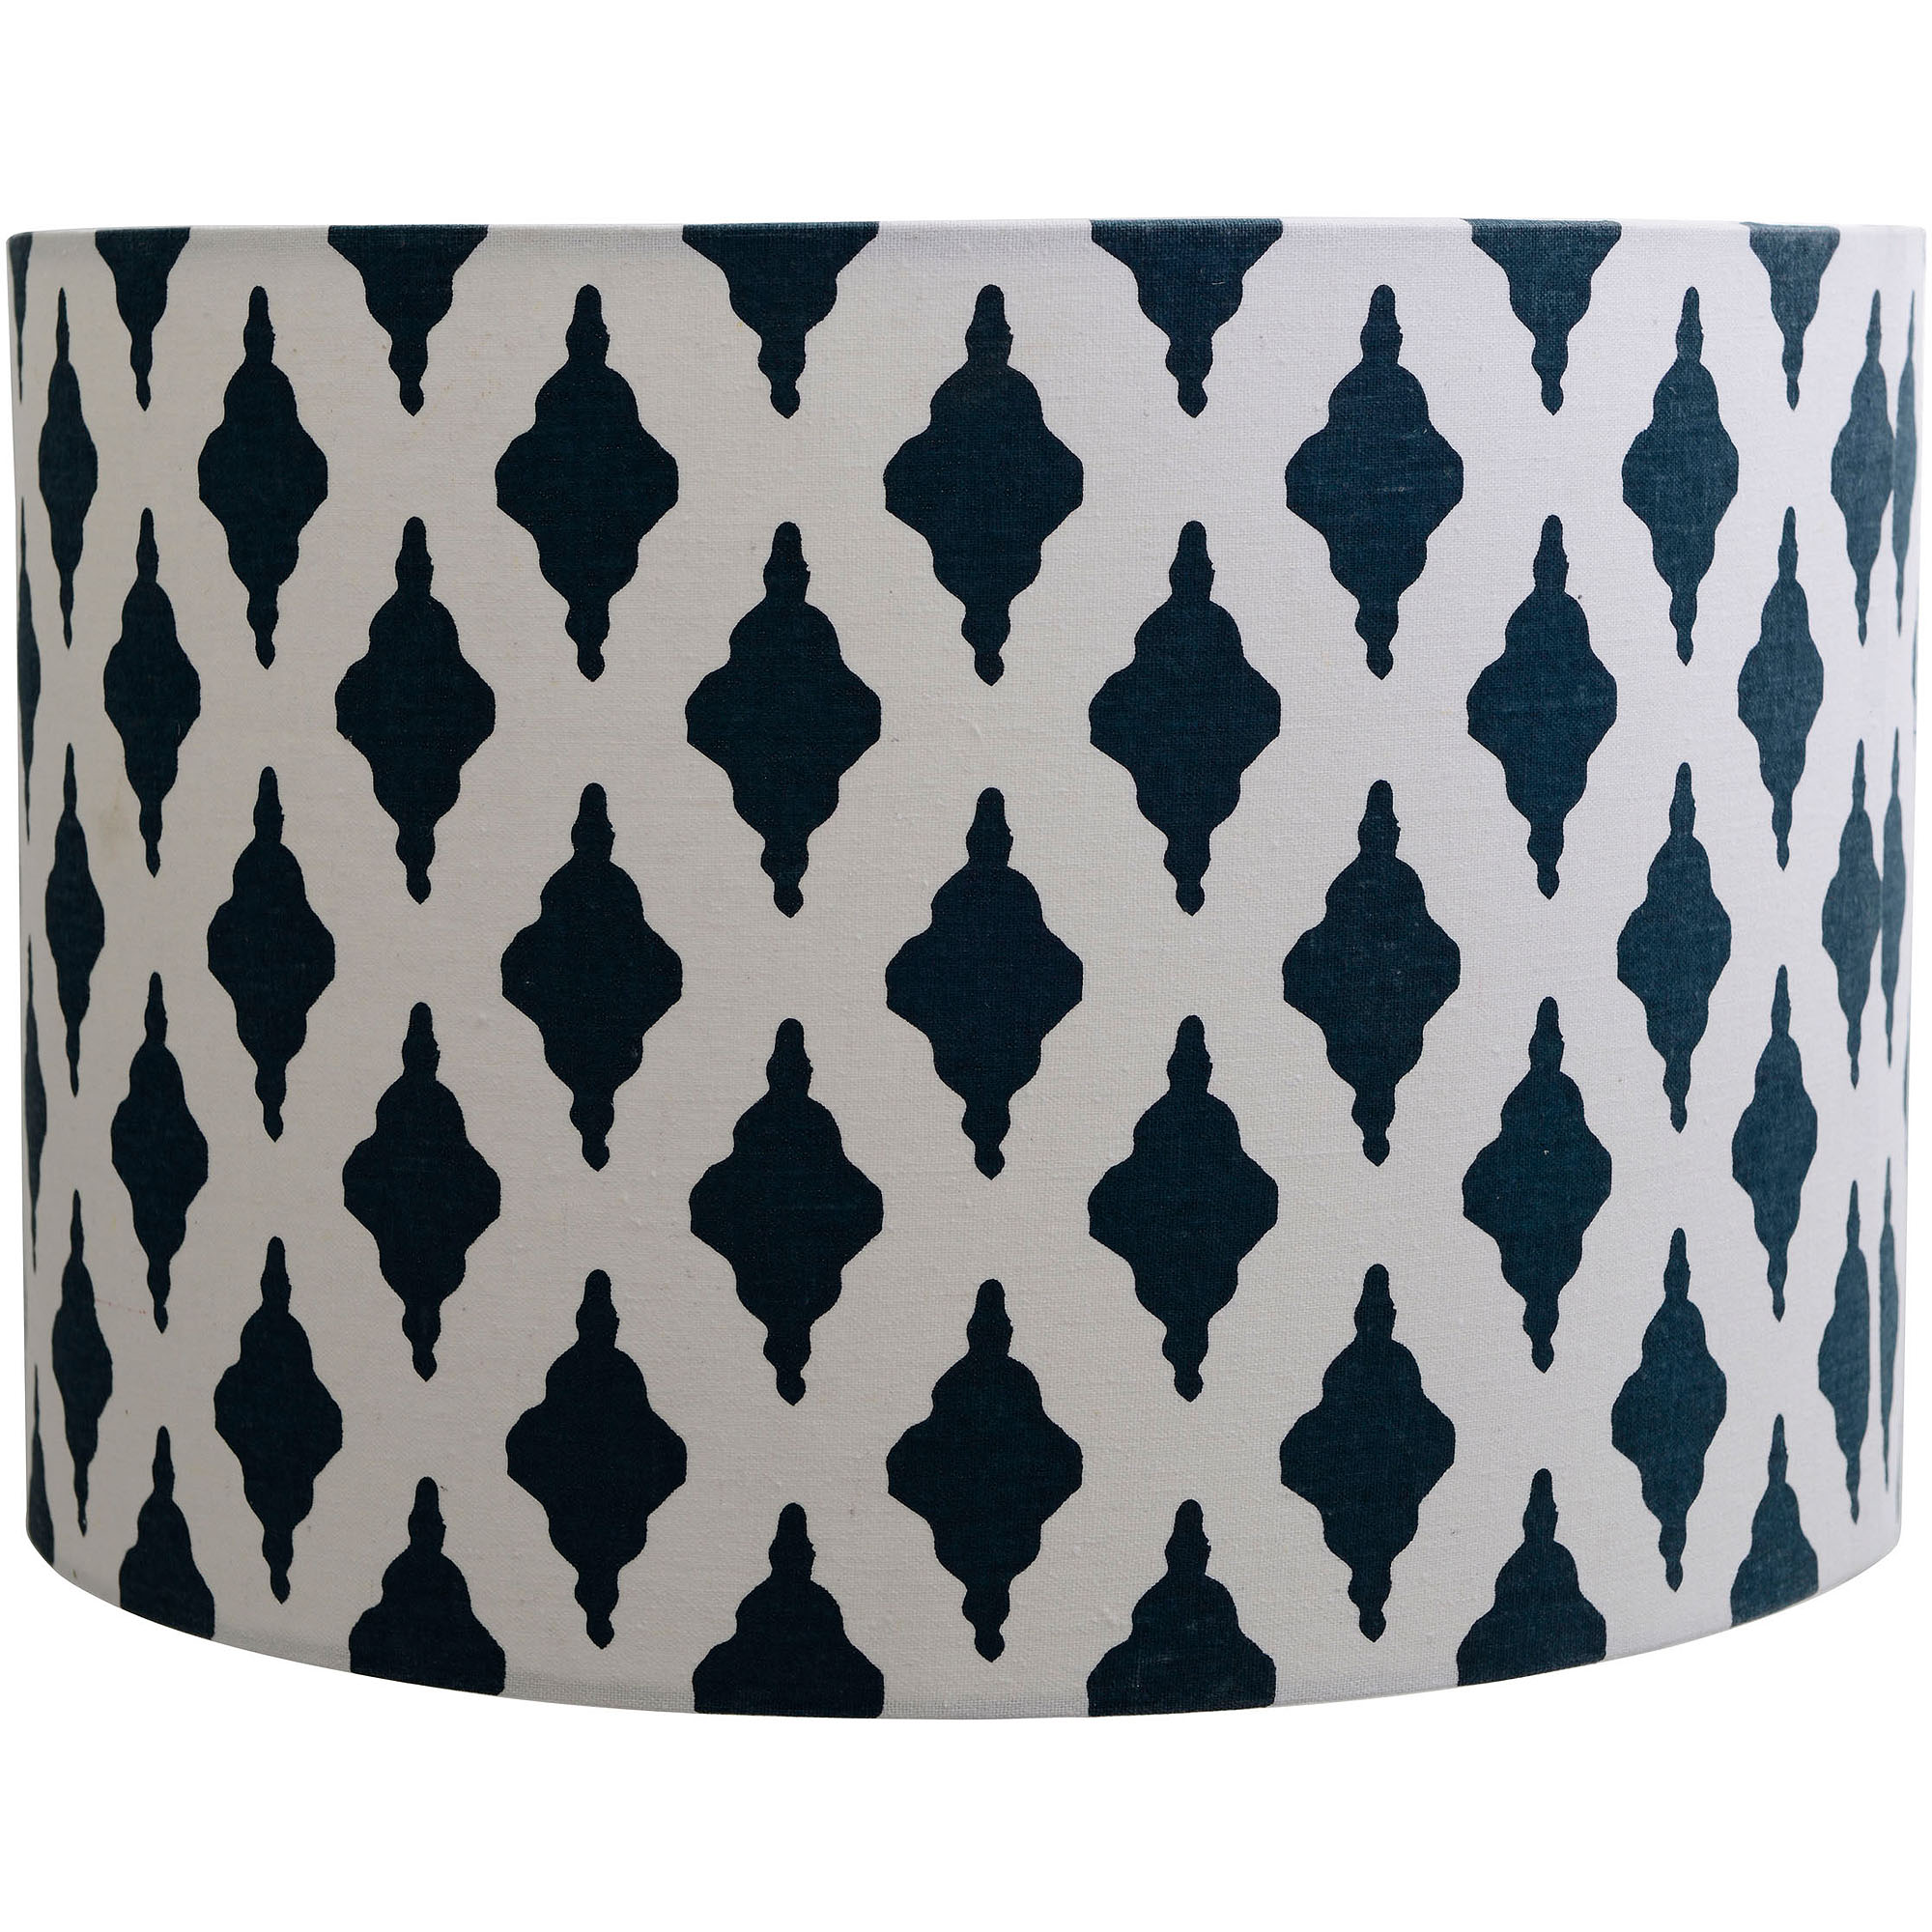 navy black and white pictures for bathrooms.  20 25 Lamp Shades Walmart com